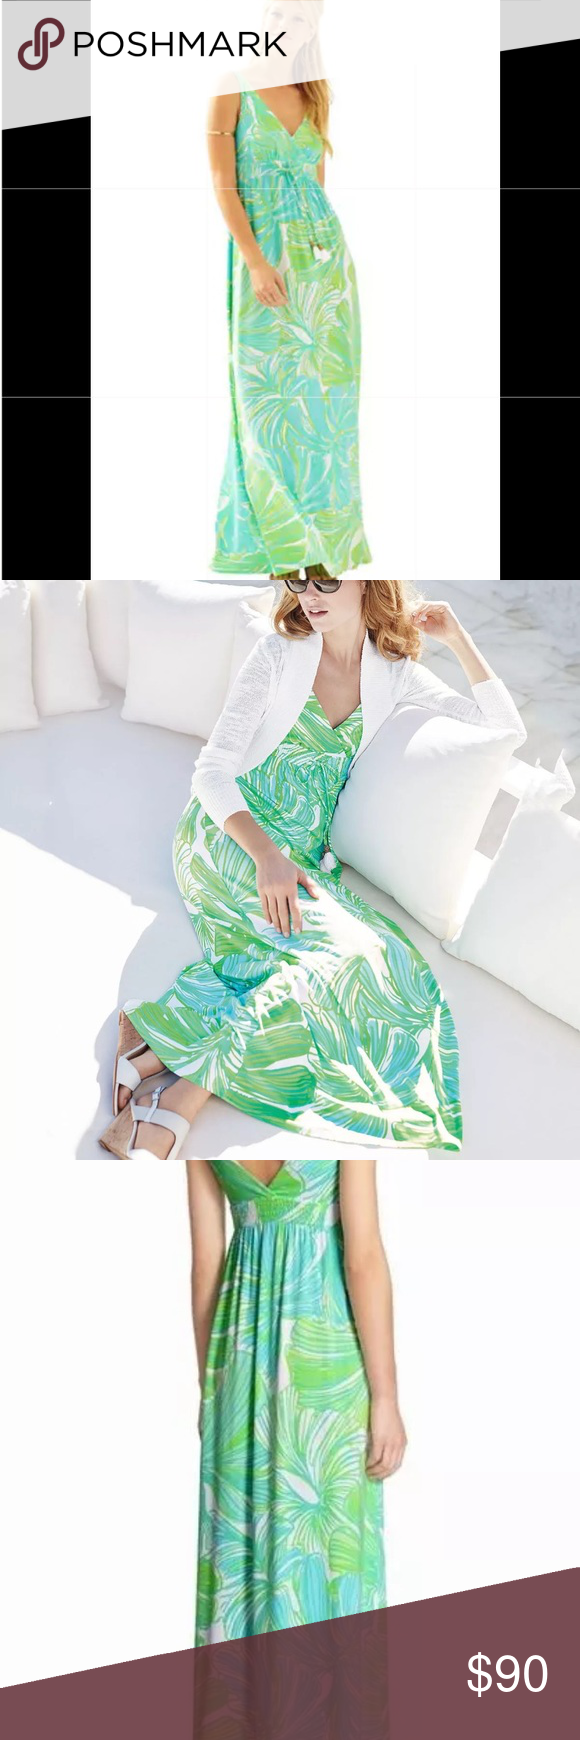 9d66f536519 Lilly Pulitzer Green Sheen Fronds Place Maxi Dress Brand new never worn Lilly  Pulitzer Maxi Dress